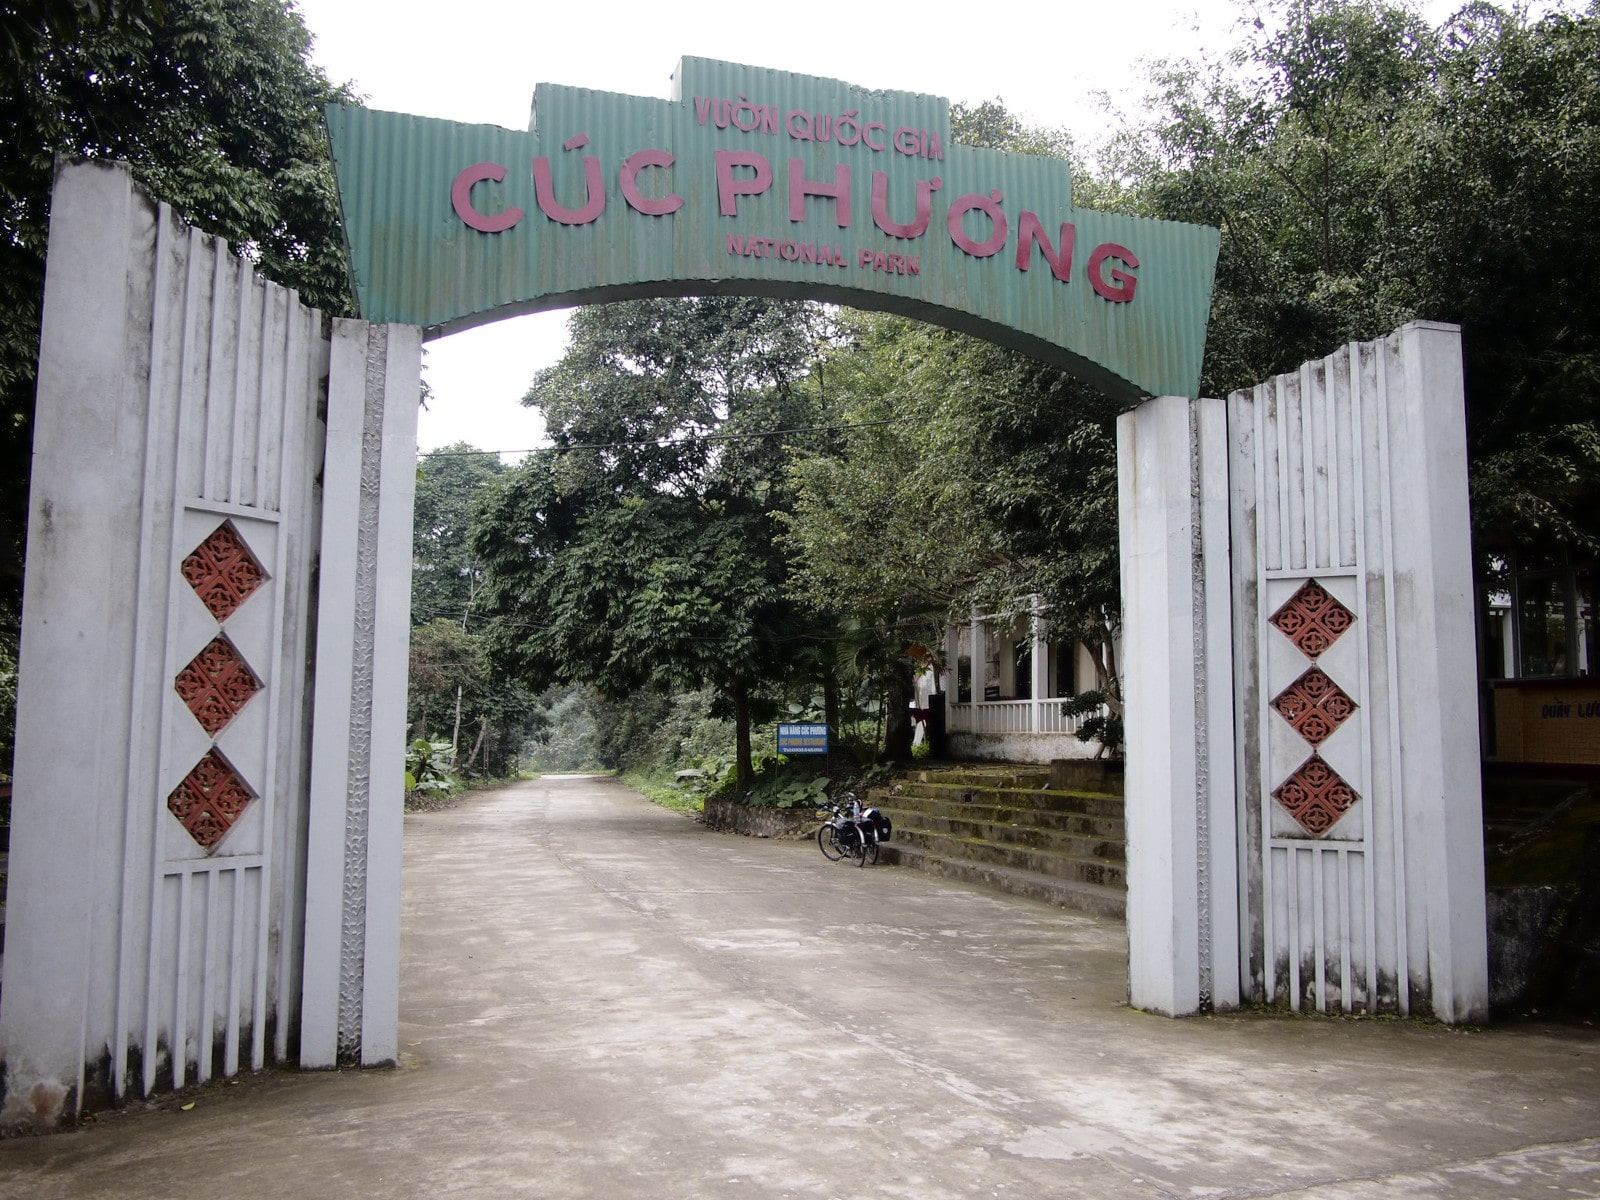 Image of the Cuc Phuong National Park entrance sign in Vietnam